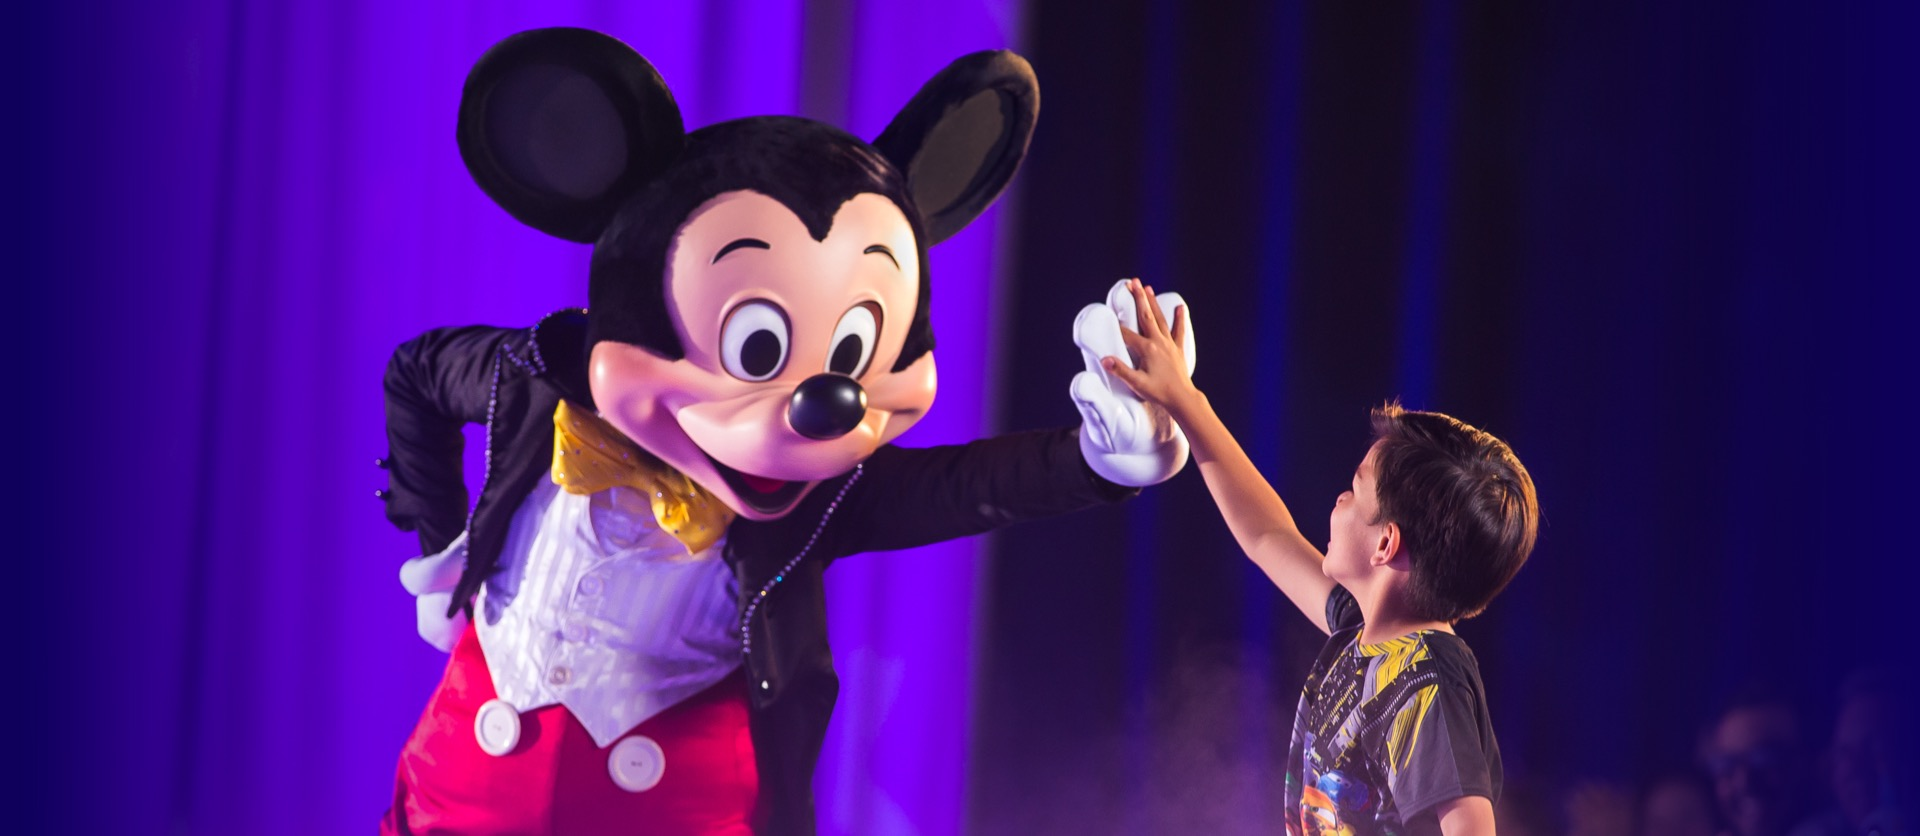 Mickey Mouse highs fives boy in from the crowd